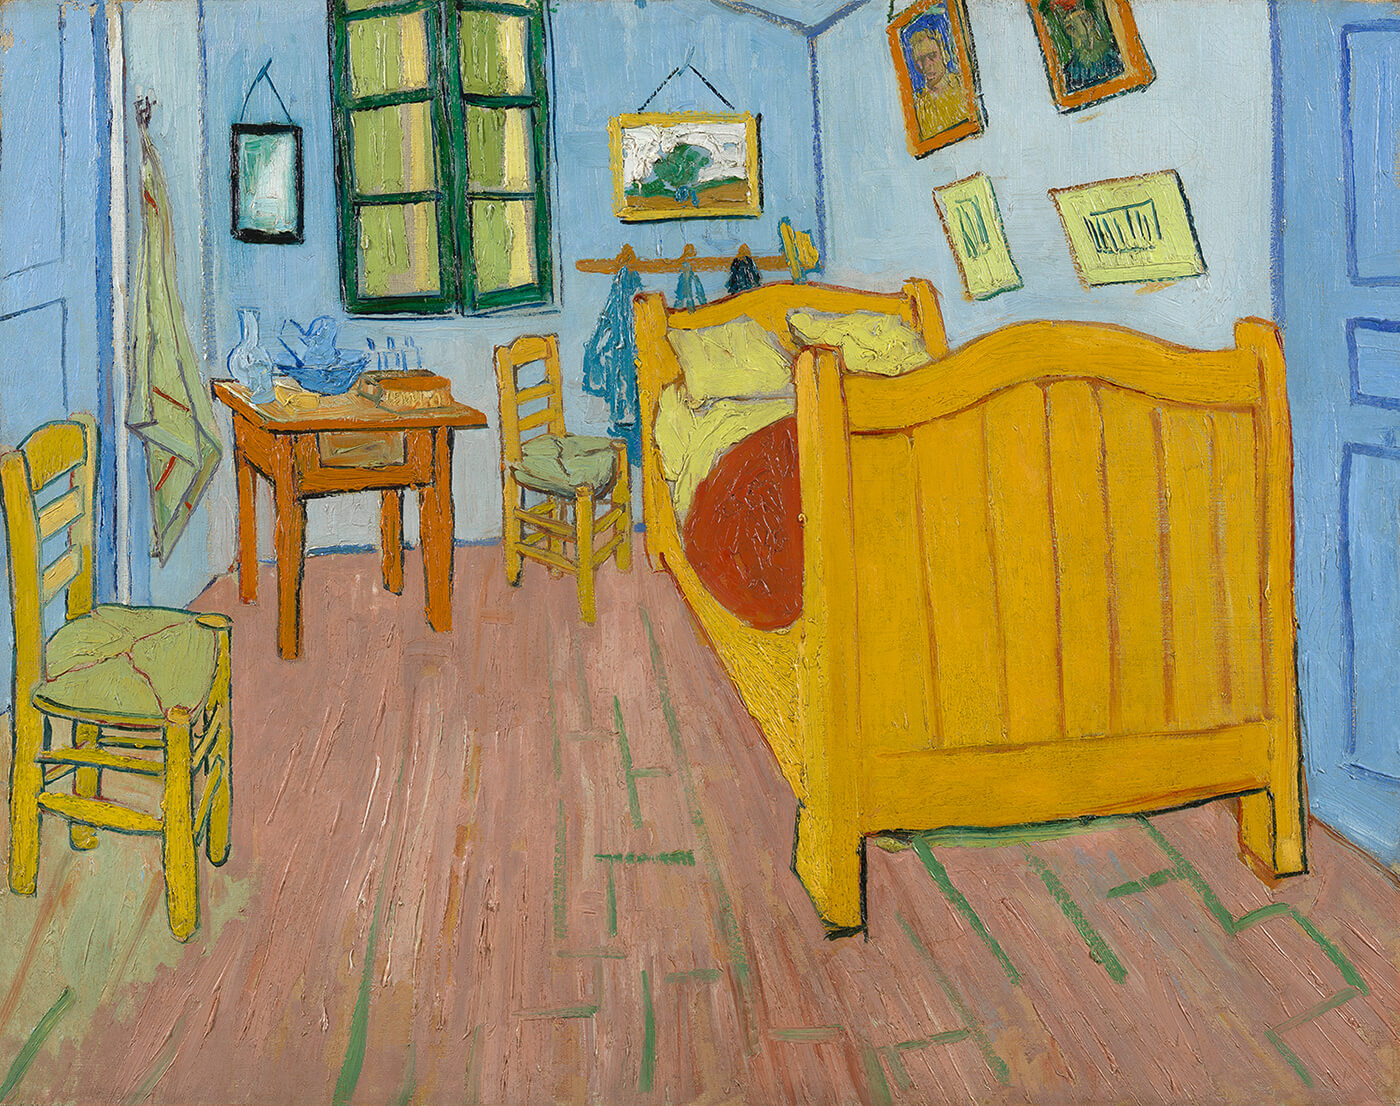 Van Gogh's Bedrooms   About the Paintings